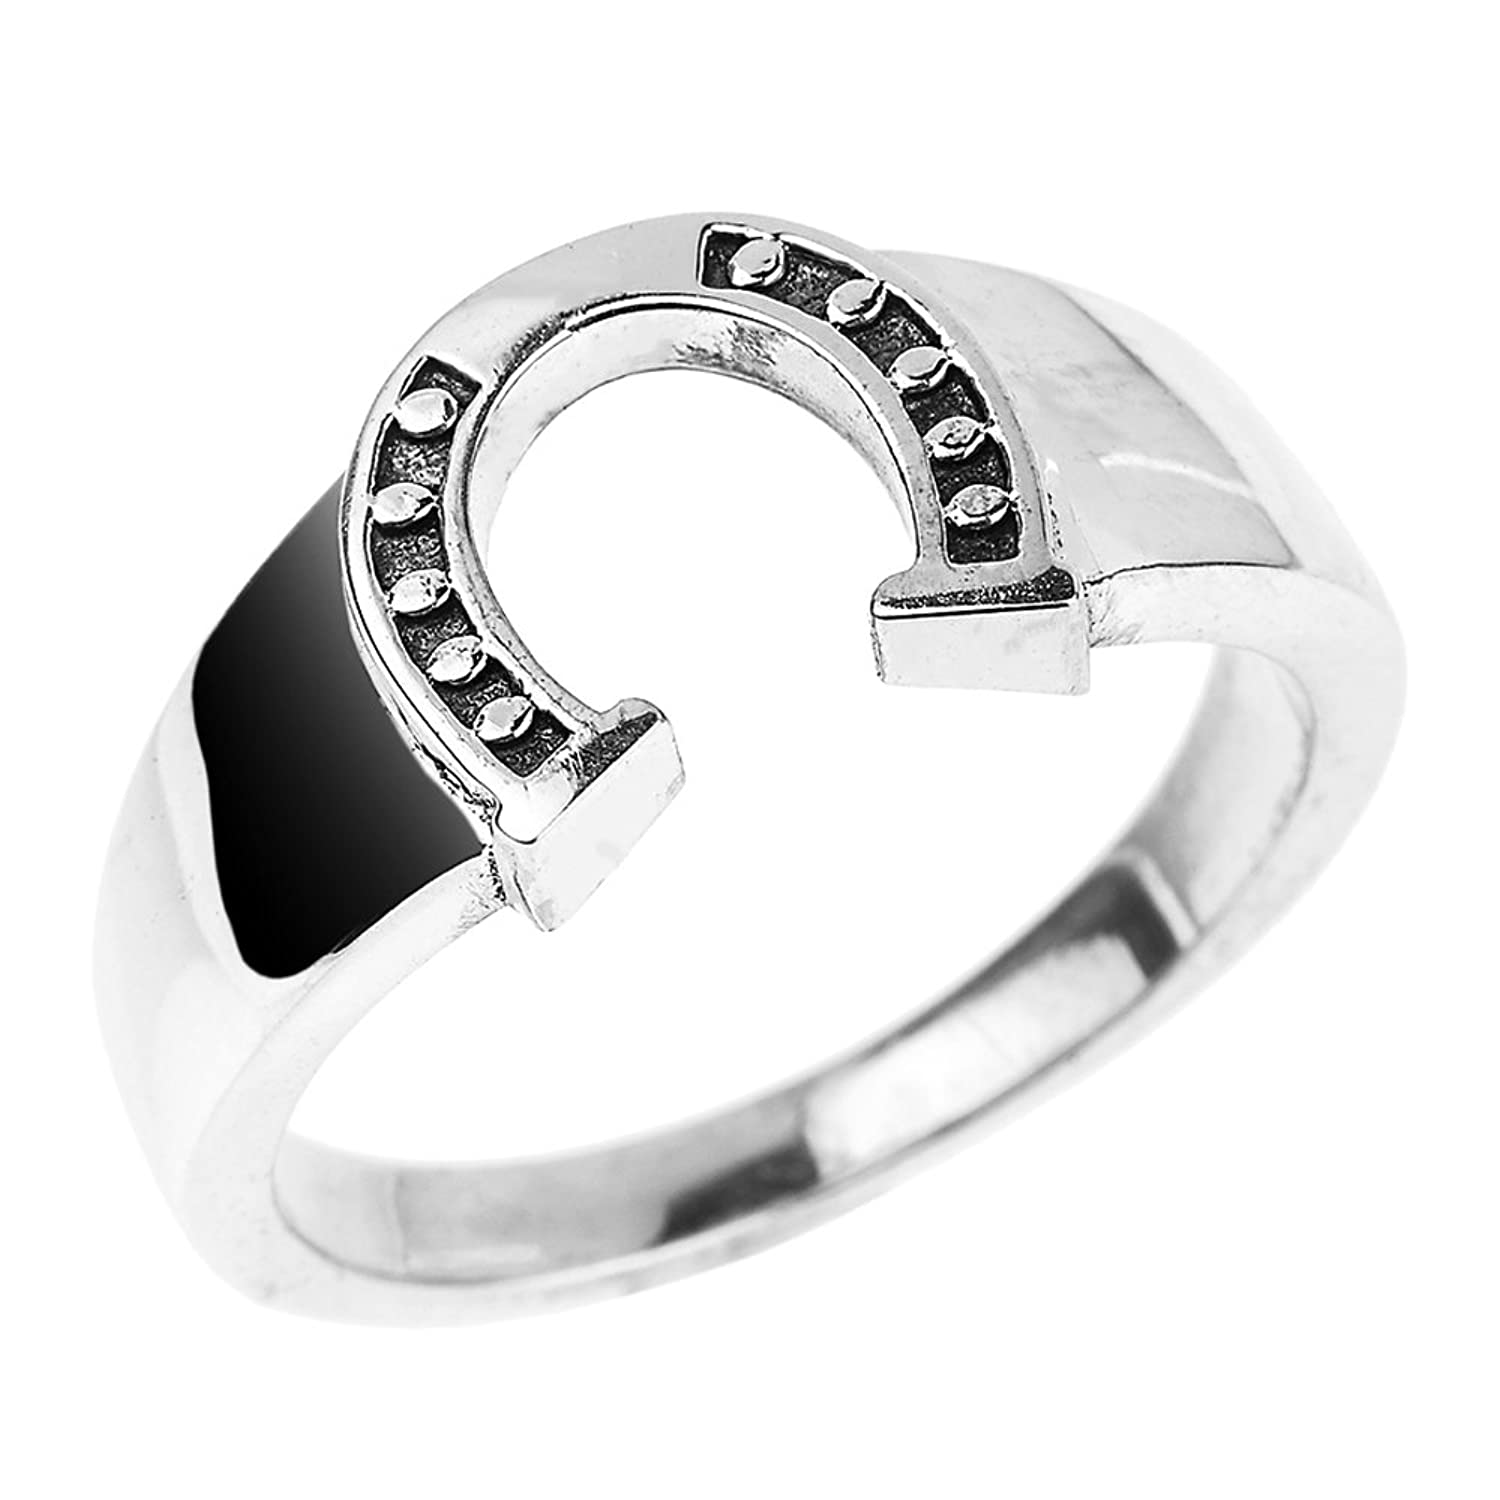 Fine 925 Sterling Silver Lucky Horseshoe Ring